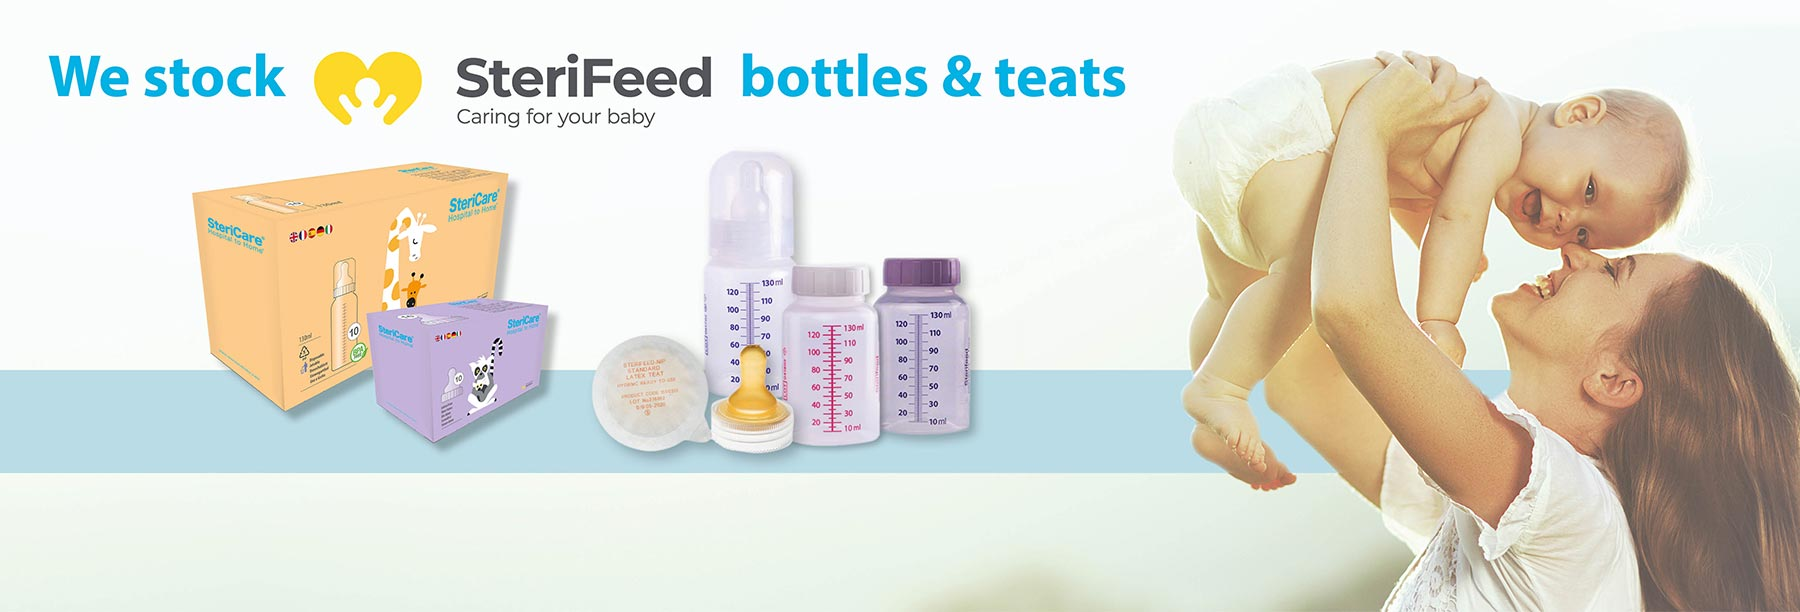 We stock SteriFeed bottles & Teats